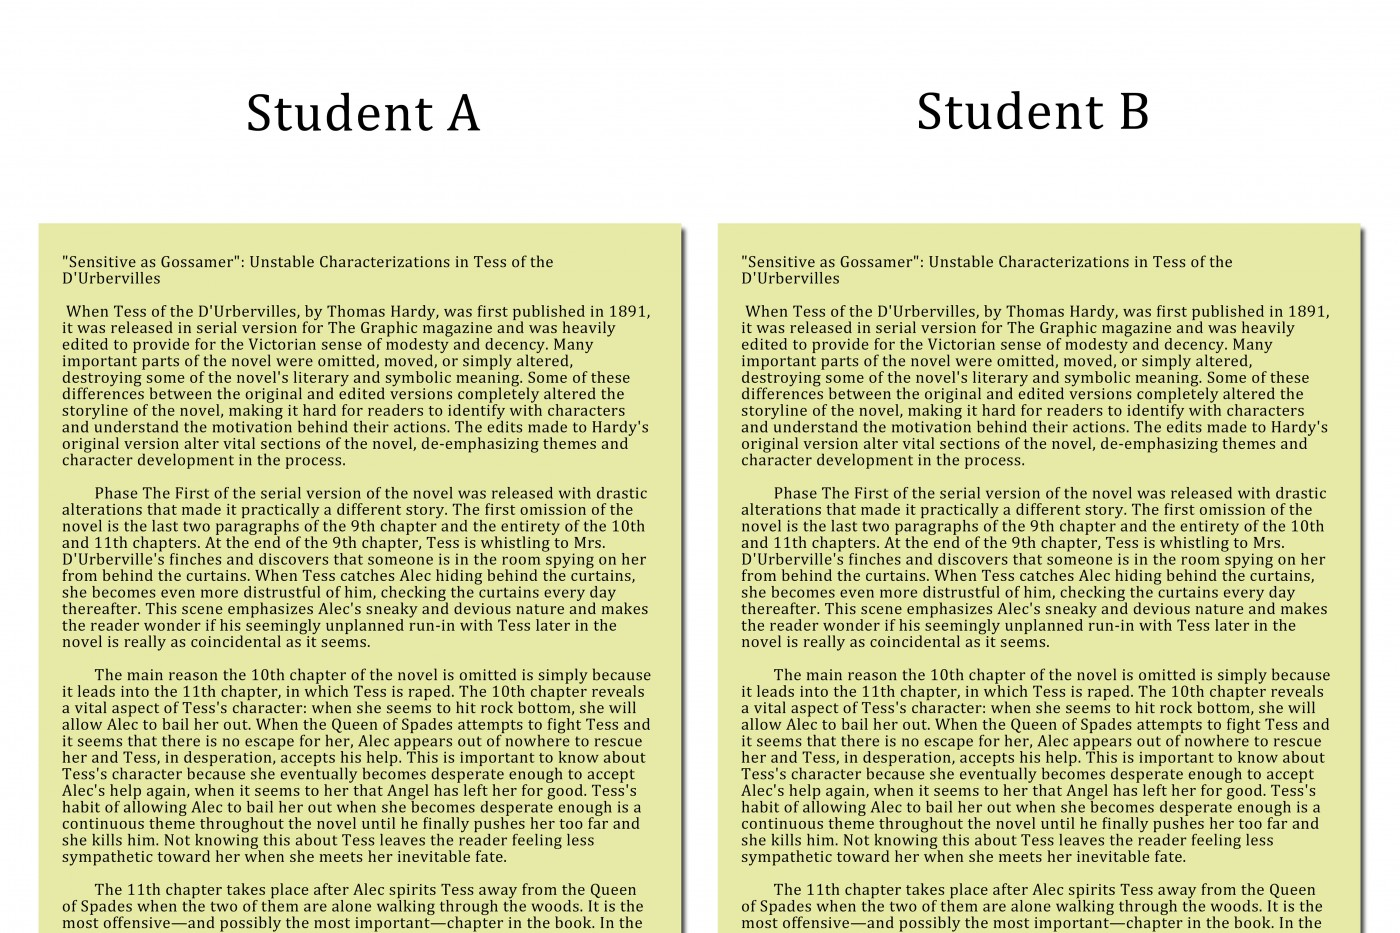 004 Write Your Essay How To Paper Steps Pictures Pay Better Essays Reddit Amazon Pdf Book By Bryan Greetham In English The Guardian Phenomenal A Good Introduction 1400